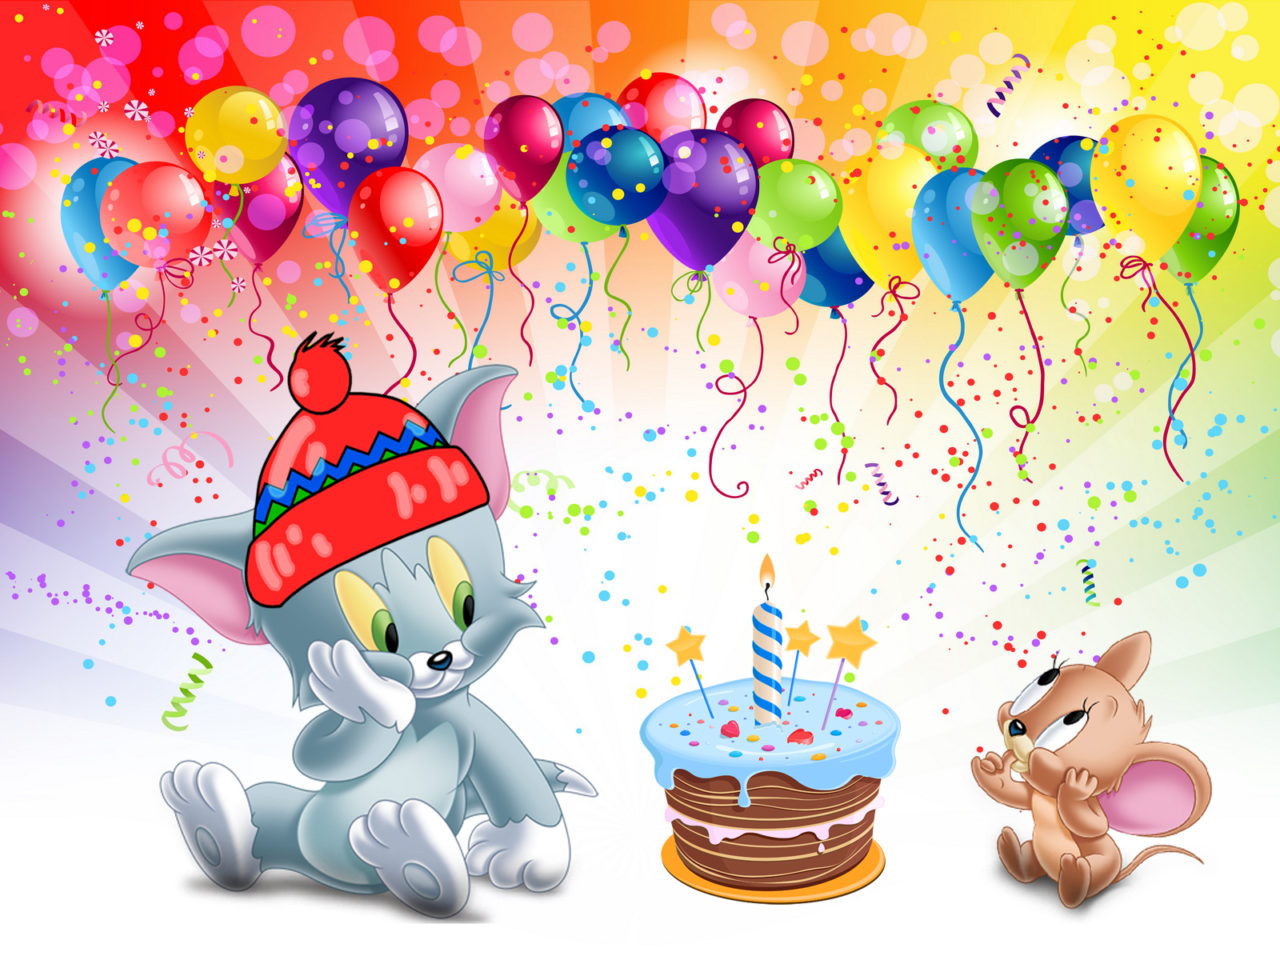 Tom And Jerry First Birthday Cake Desktop Hd Wallpaper For